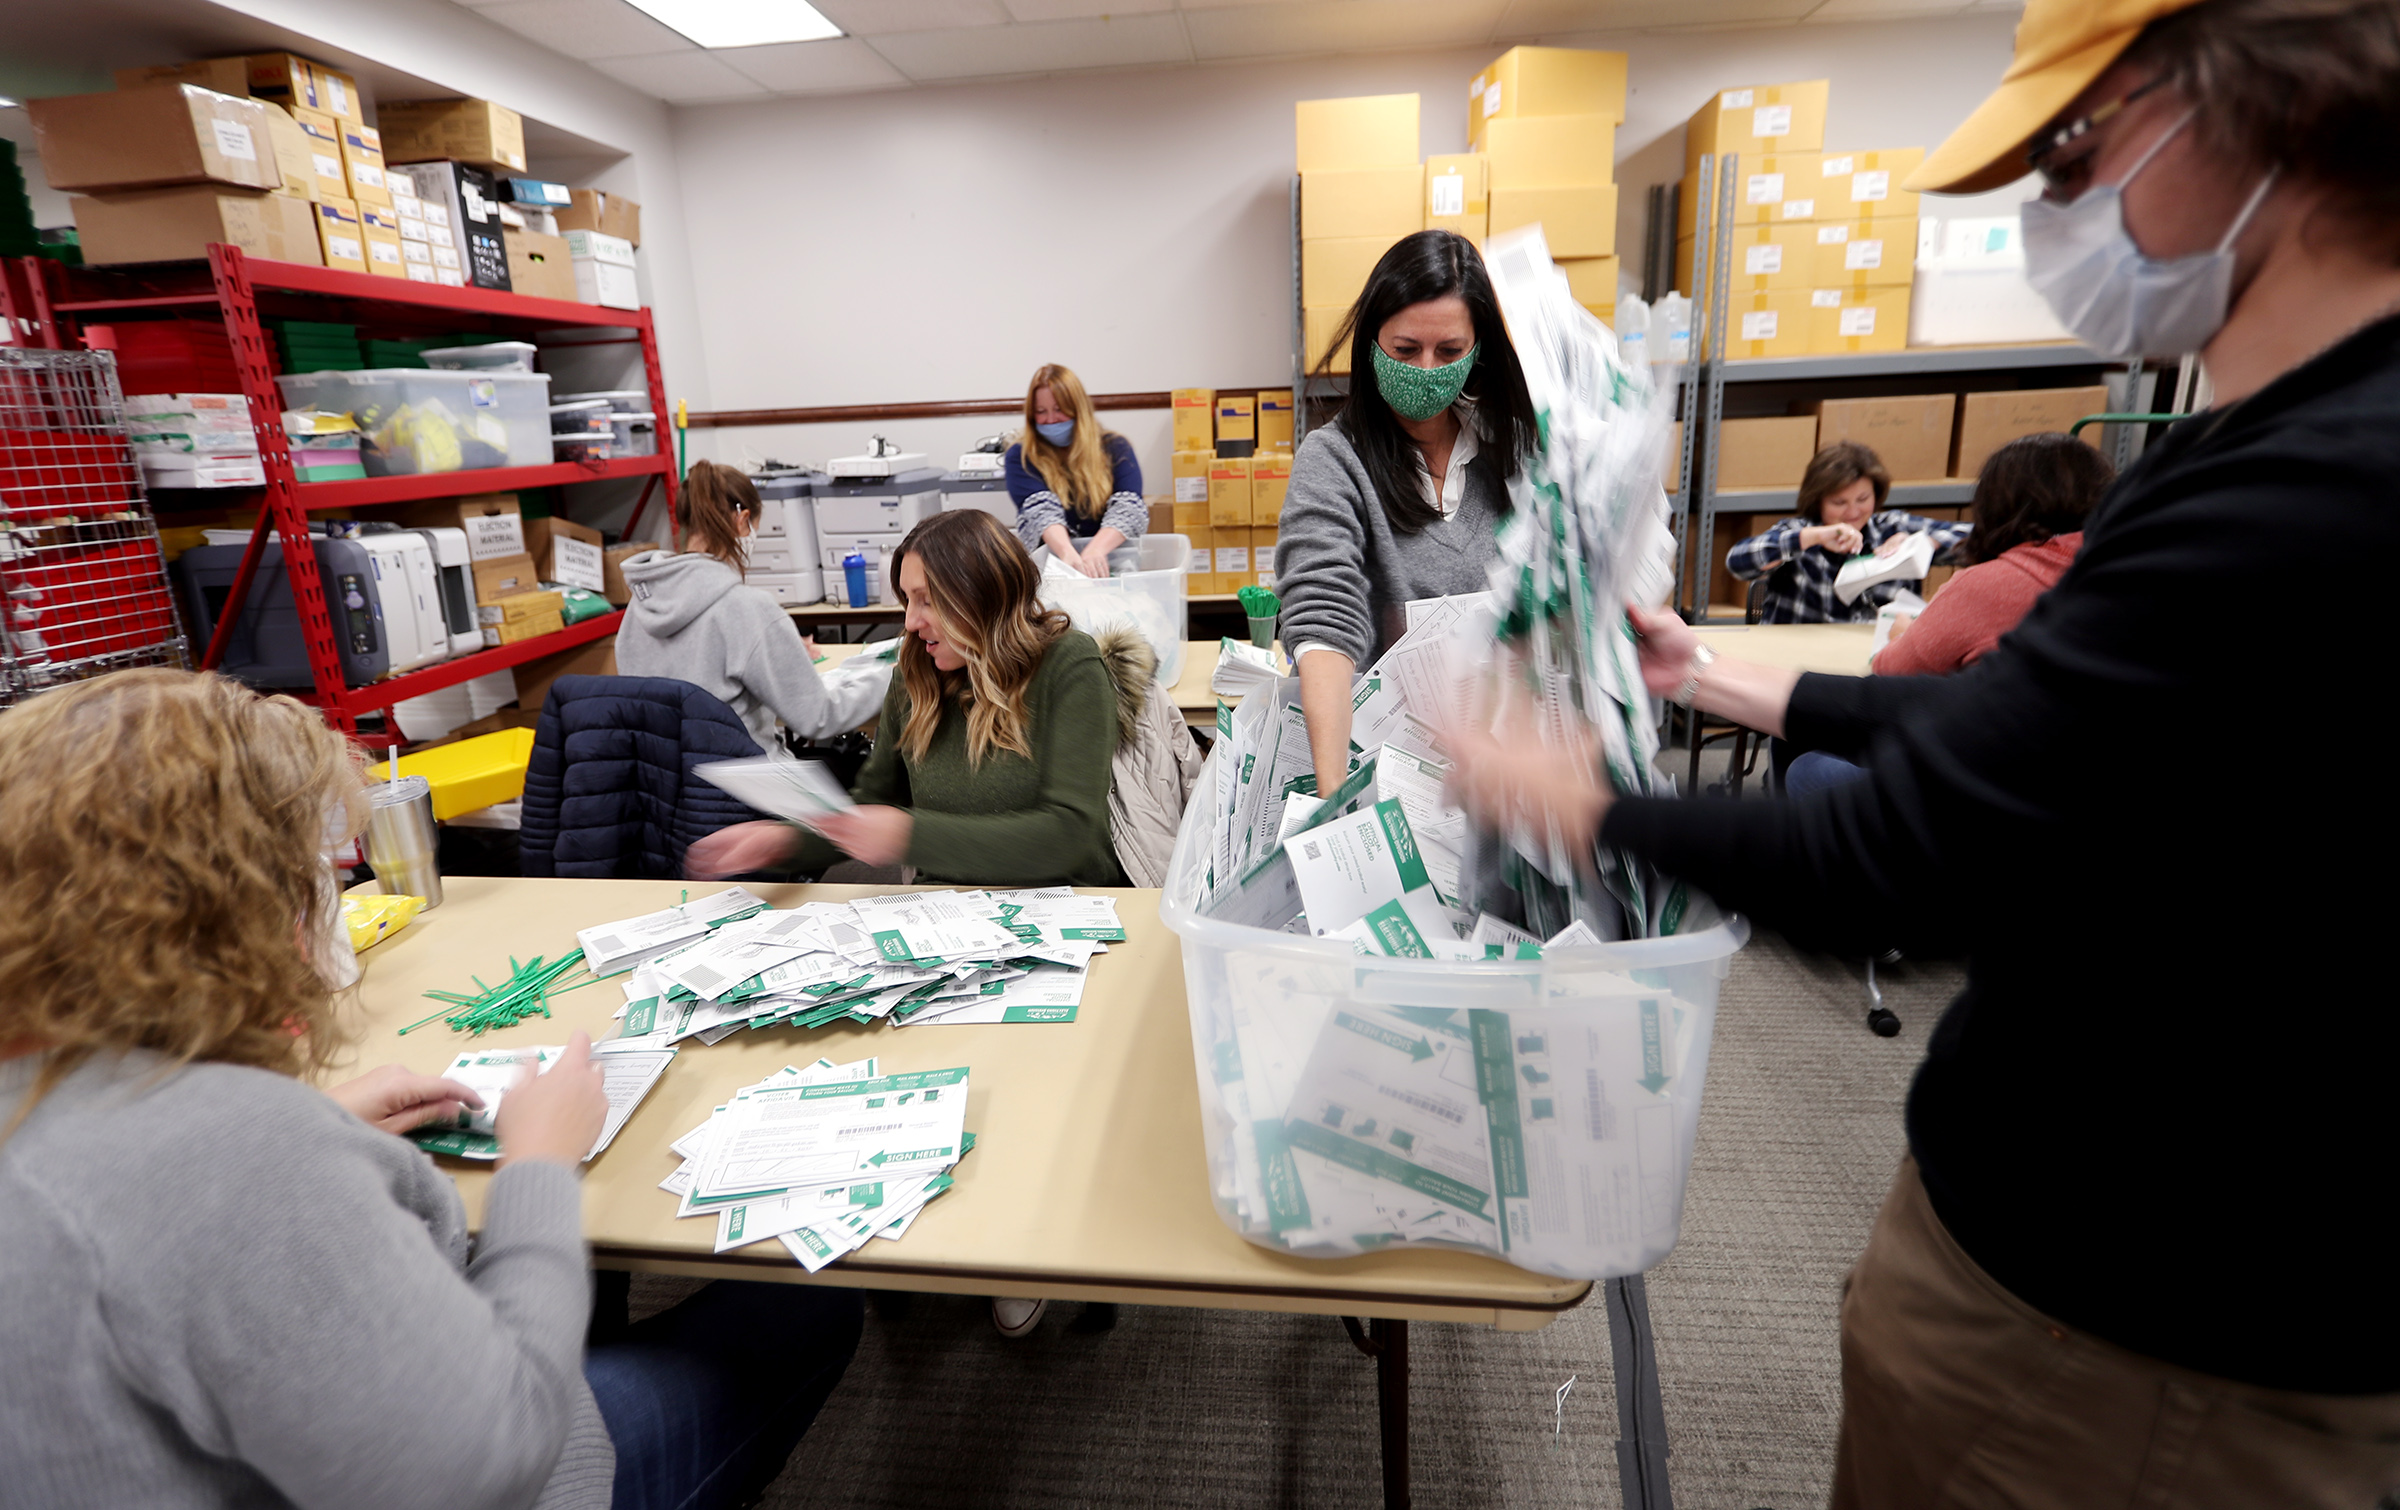 Workers go through every envelope making sure all the ballots have been taken out and counted at the Utah County Clerk/Auditor's Office in Provo on Tuesday, Oct. 27, 2020.